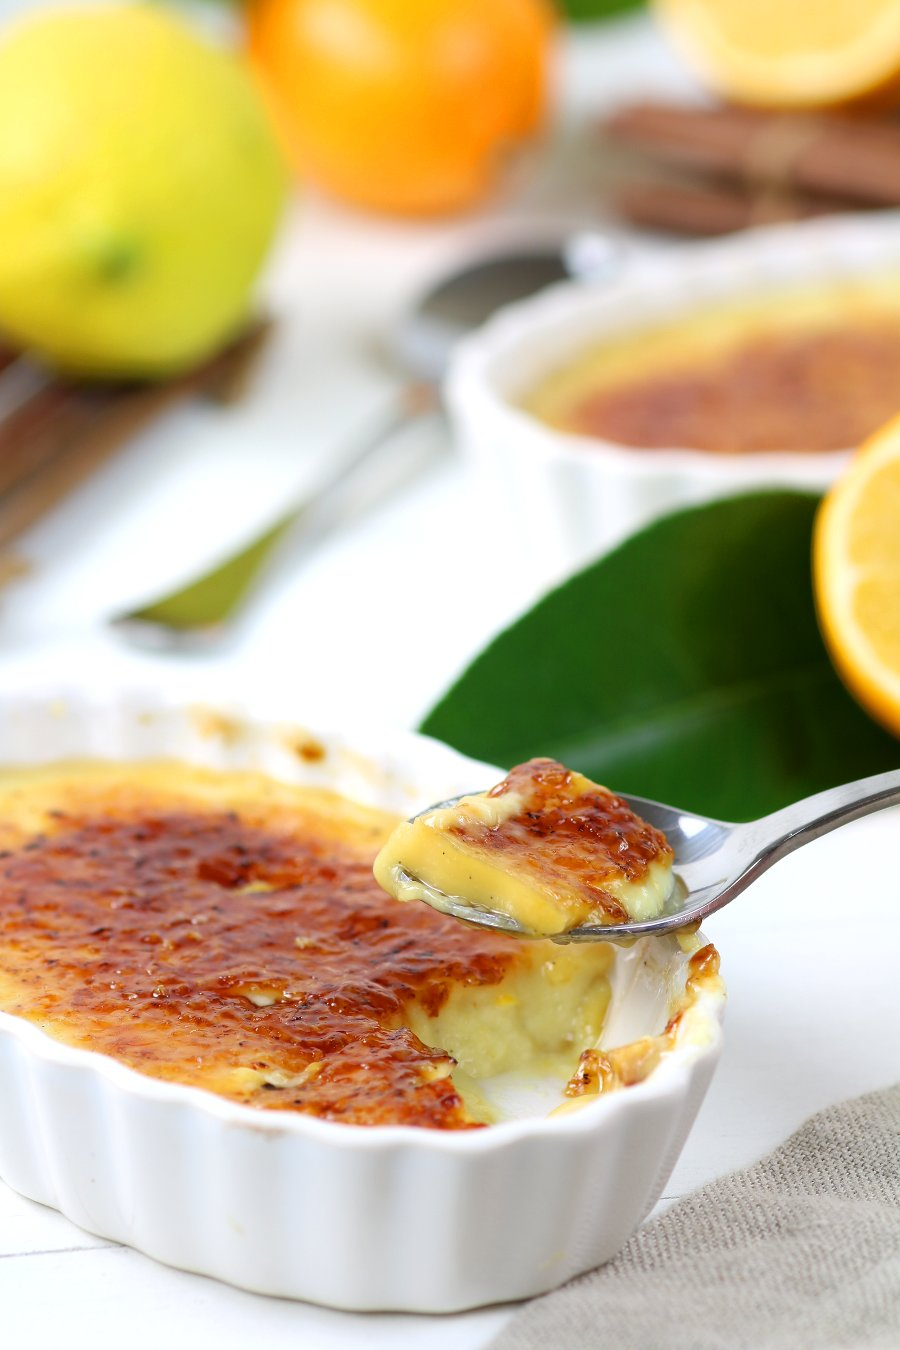 Use your spoon to shatter the caramel crackle topping of this Vegan Meyer Lemon Crème Brûlée and reveal the custardy and lemony dessert underneath!